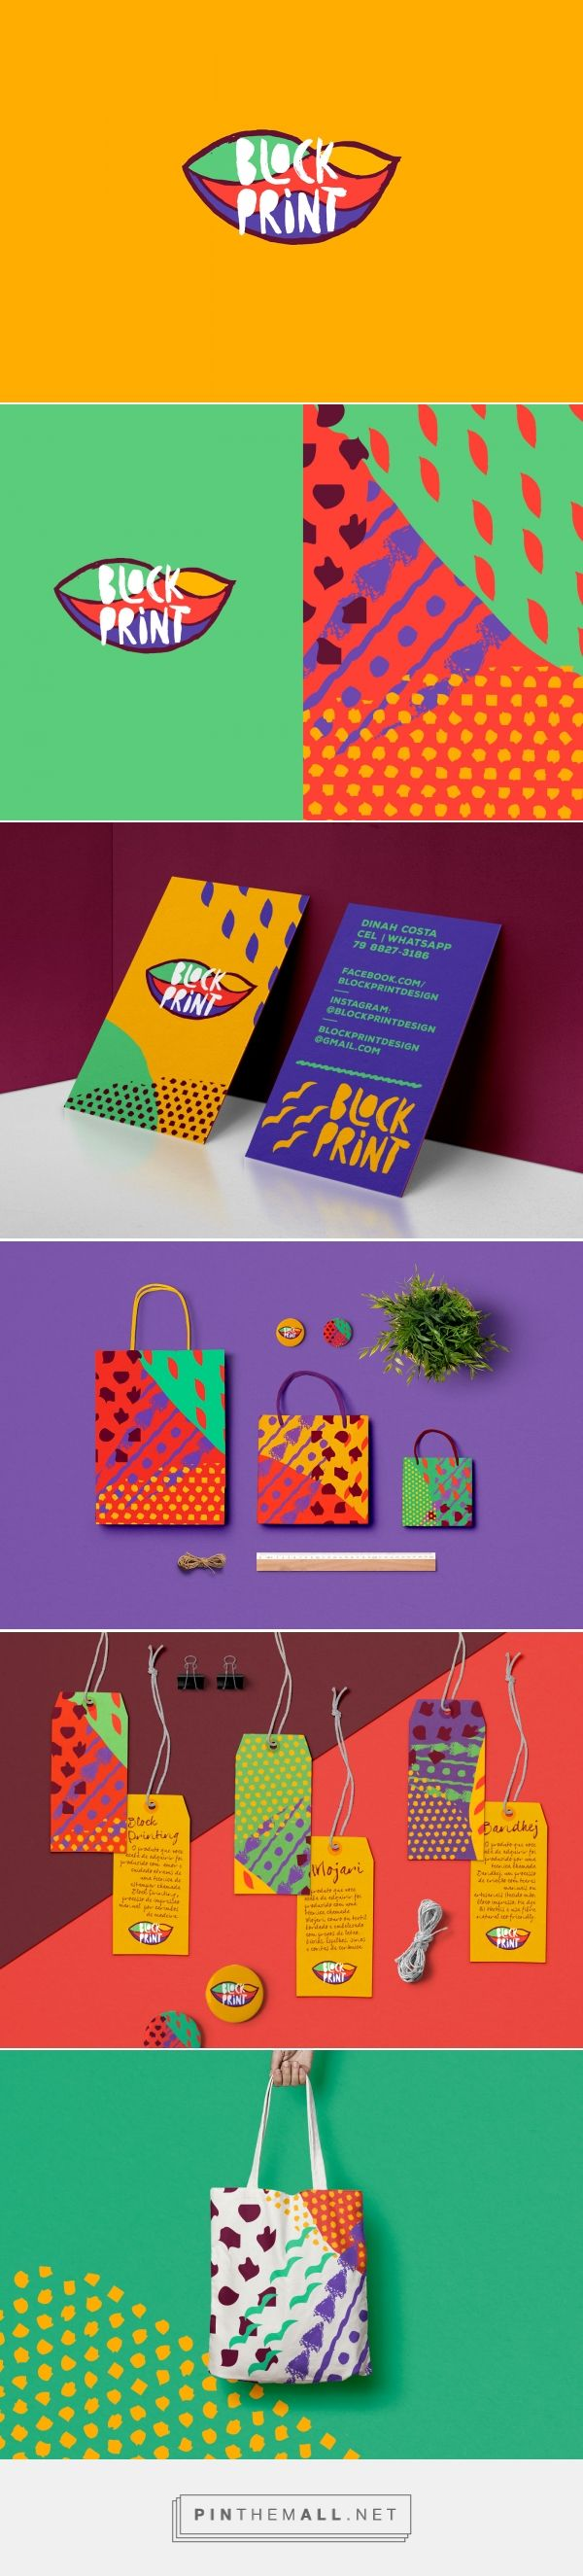 Block Print Womans Accessory Branding by Will Nunes | Fivestar Branding Agency – Design and Branding Agency & Inspiration Gallery